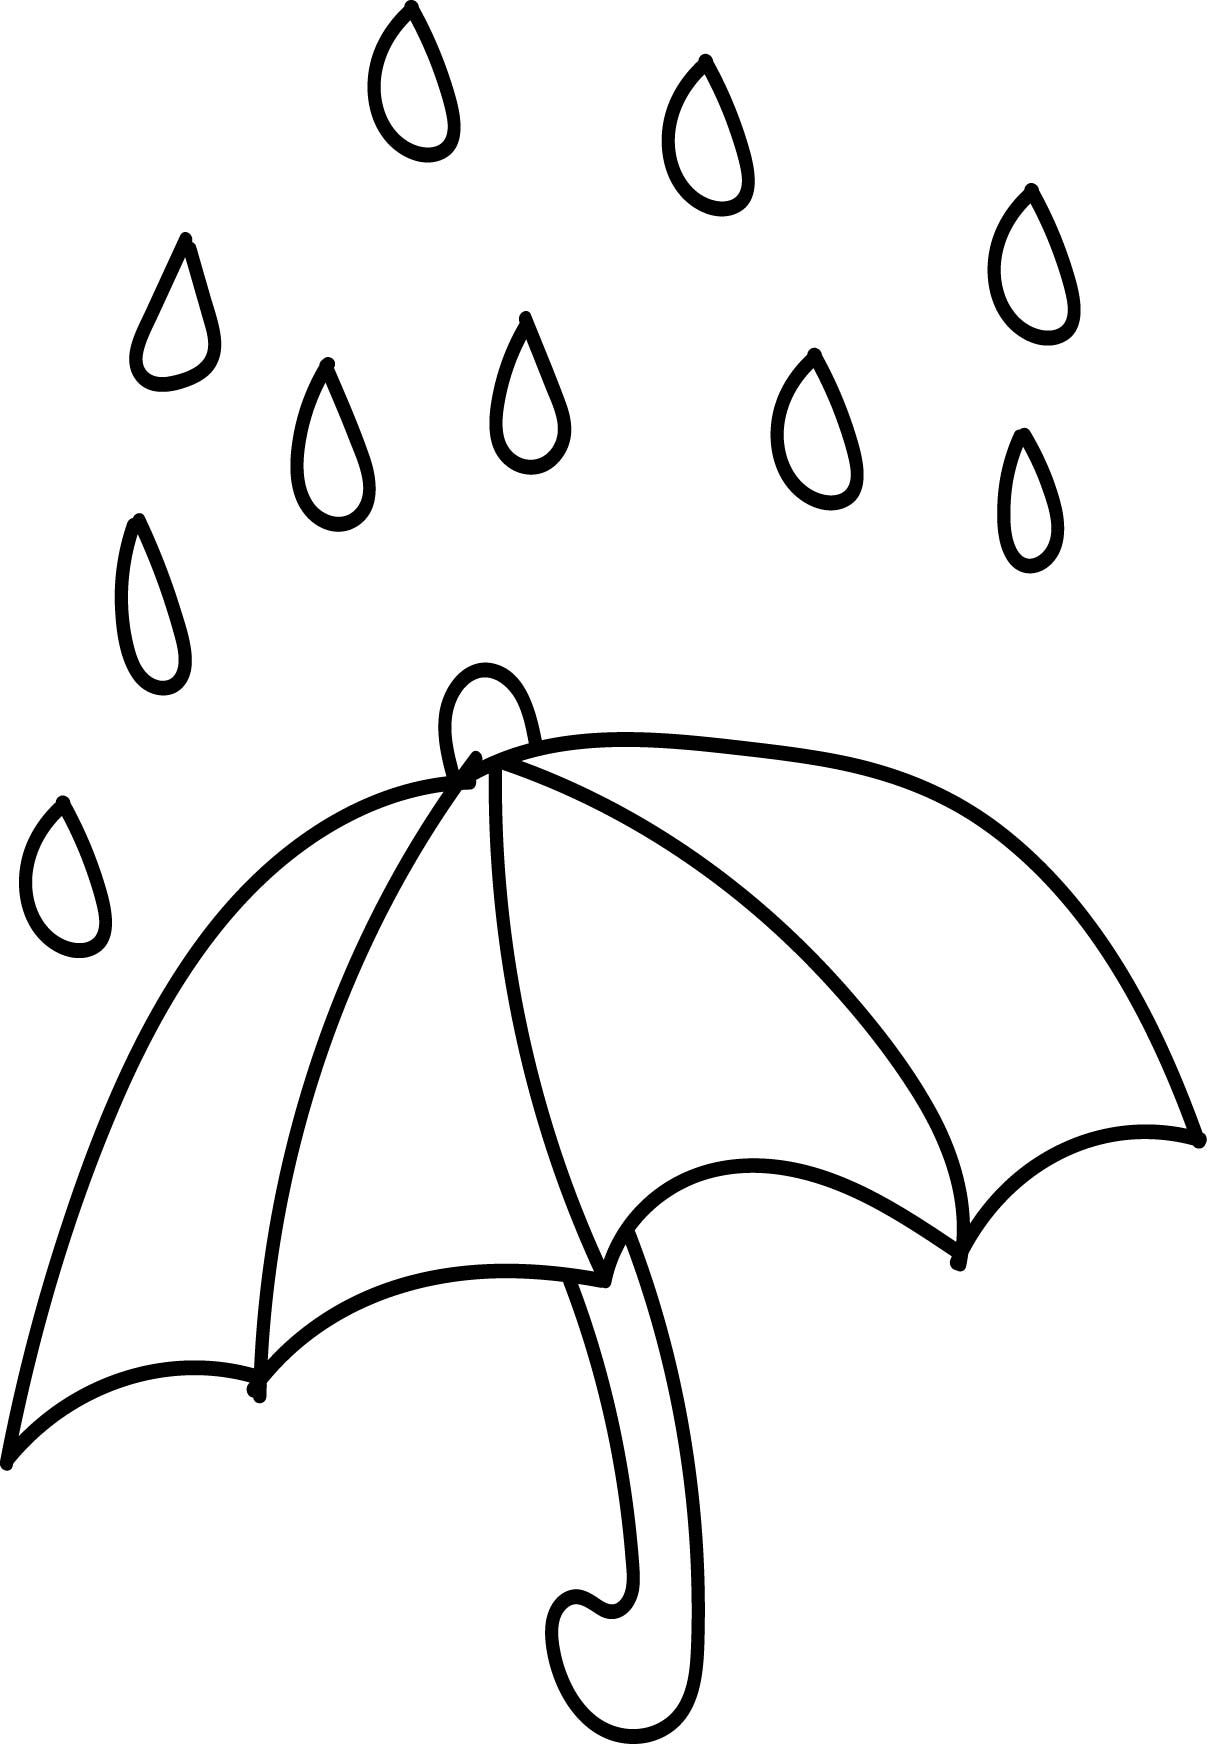 Raindrop Coloring Page At Getdrawings Com Free For Personal Use